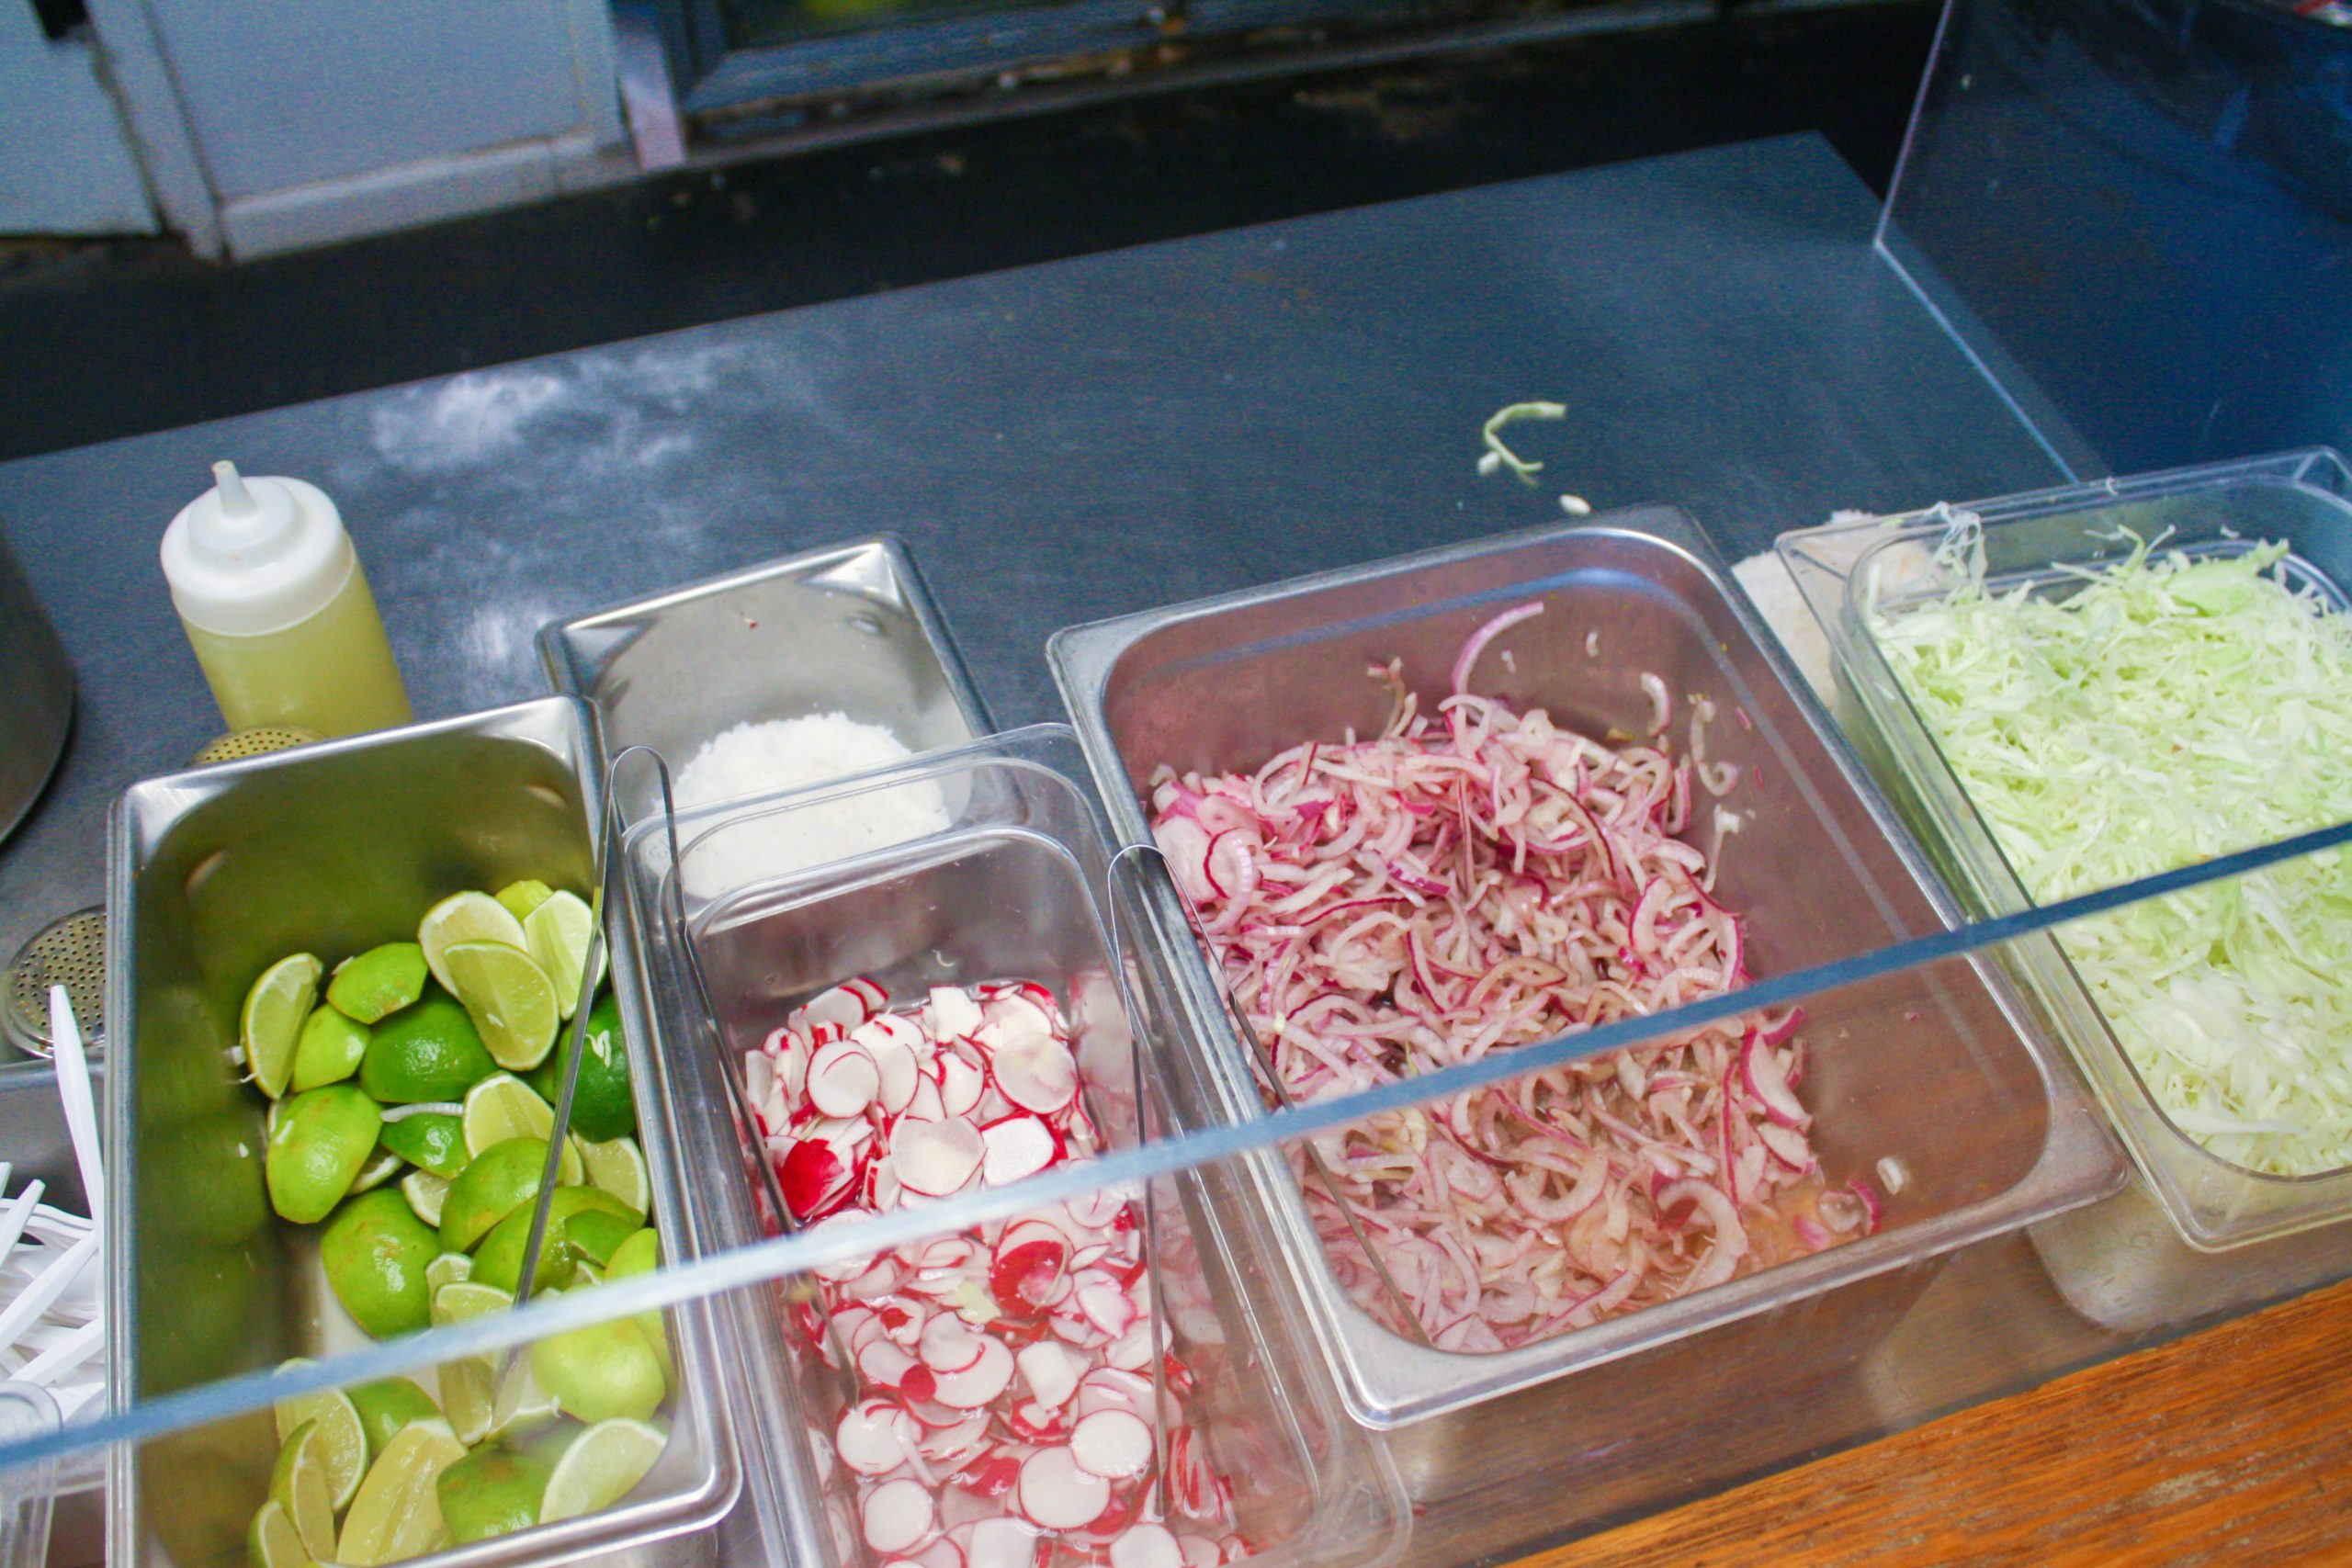 Colorful ingredients that make up the torta ahogada dish. Photo by Rocío Guenther.